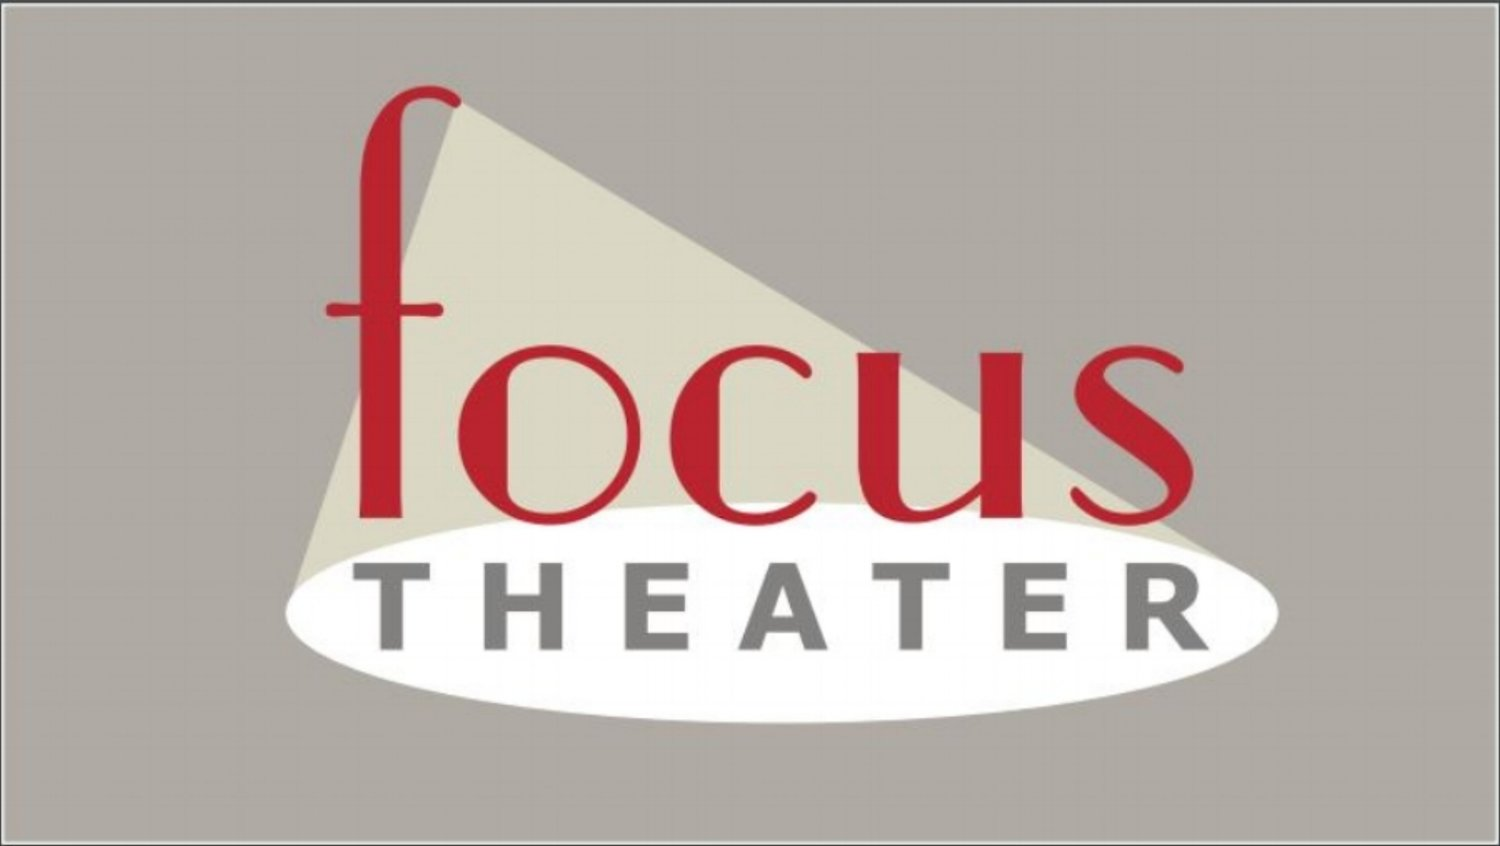 The Focus Theater